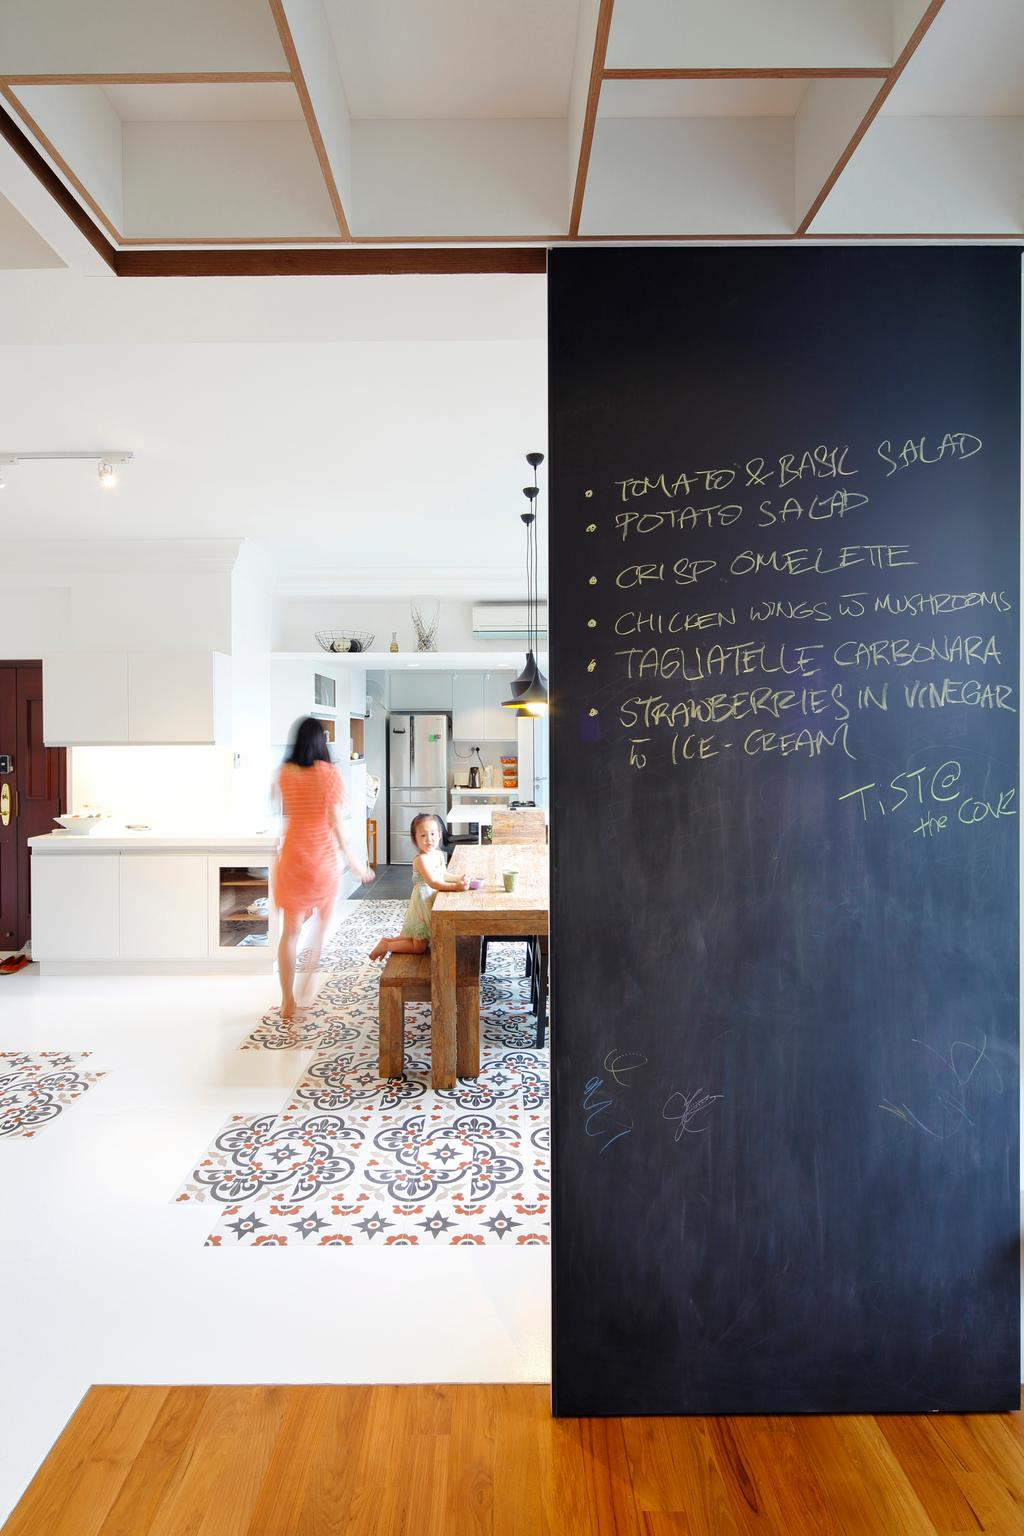 Contemporary, HDB, Artists Home & Studio, Architect, Lekker Architects, Wooden Flooring, Laminated Floor, Chalkboard Wall, Wooden Table, Wooden Dining Table, Wooden Bench, Pendant Lighting, Designed Tiles, Blackboard, Human, People, Person